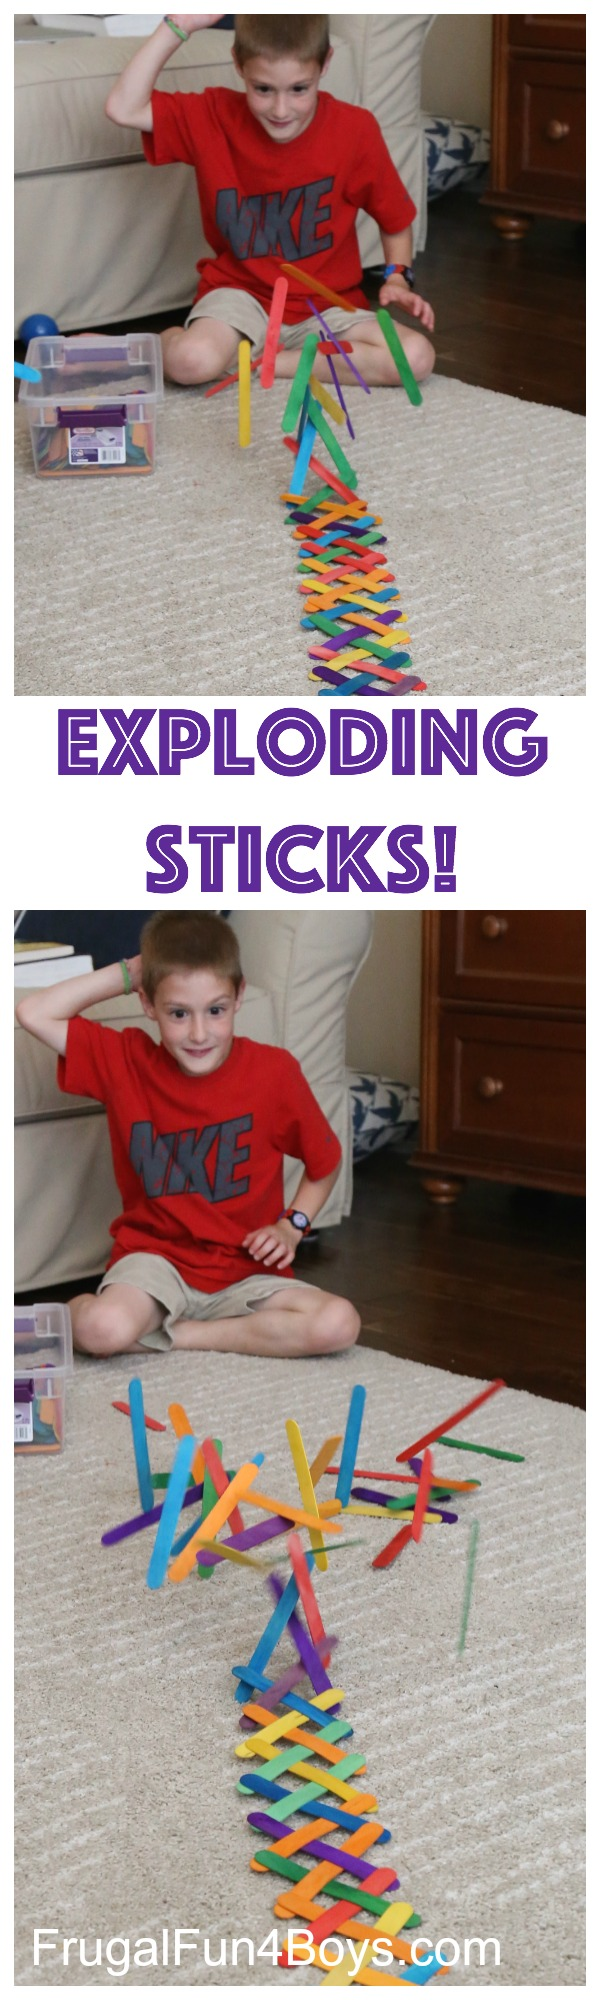 Build an Exploding Chain Reactions with Popsicle Sticks